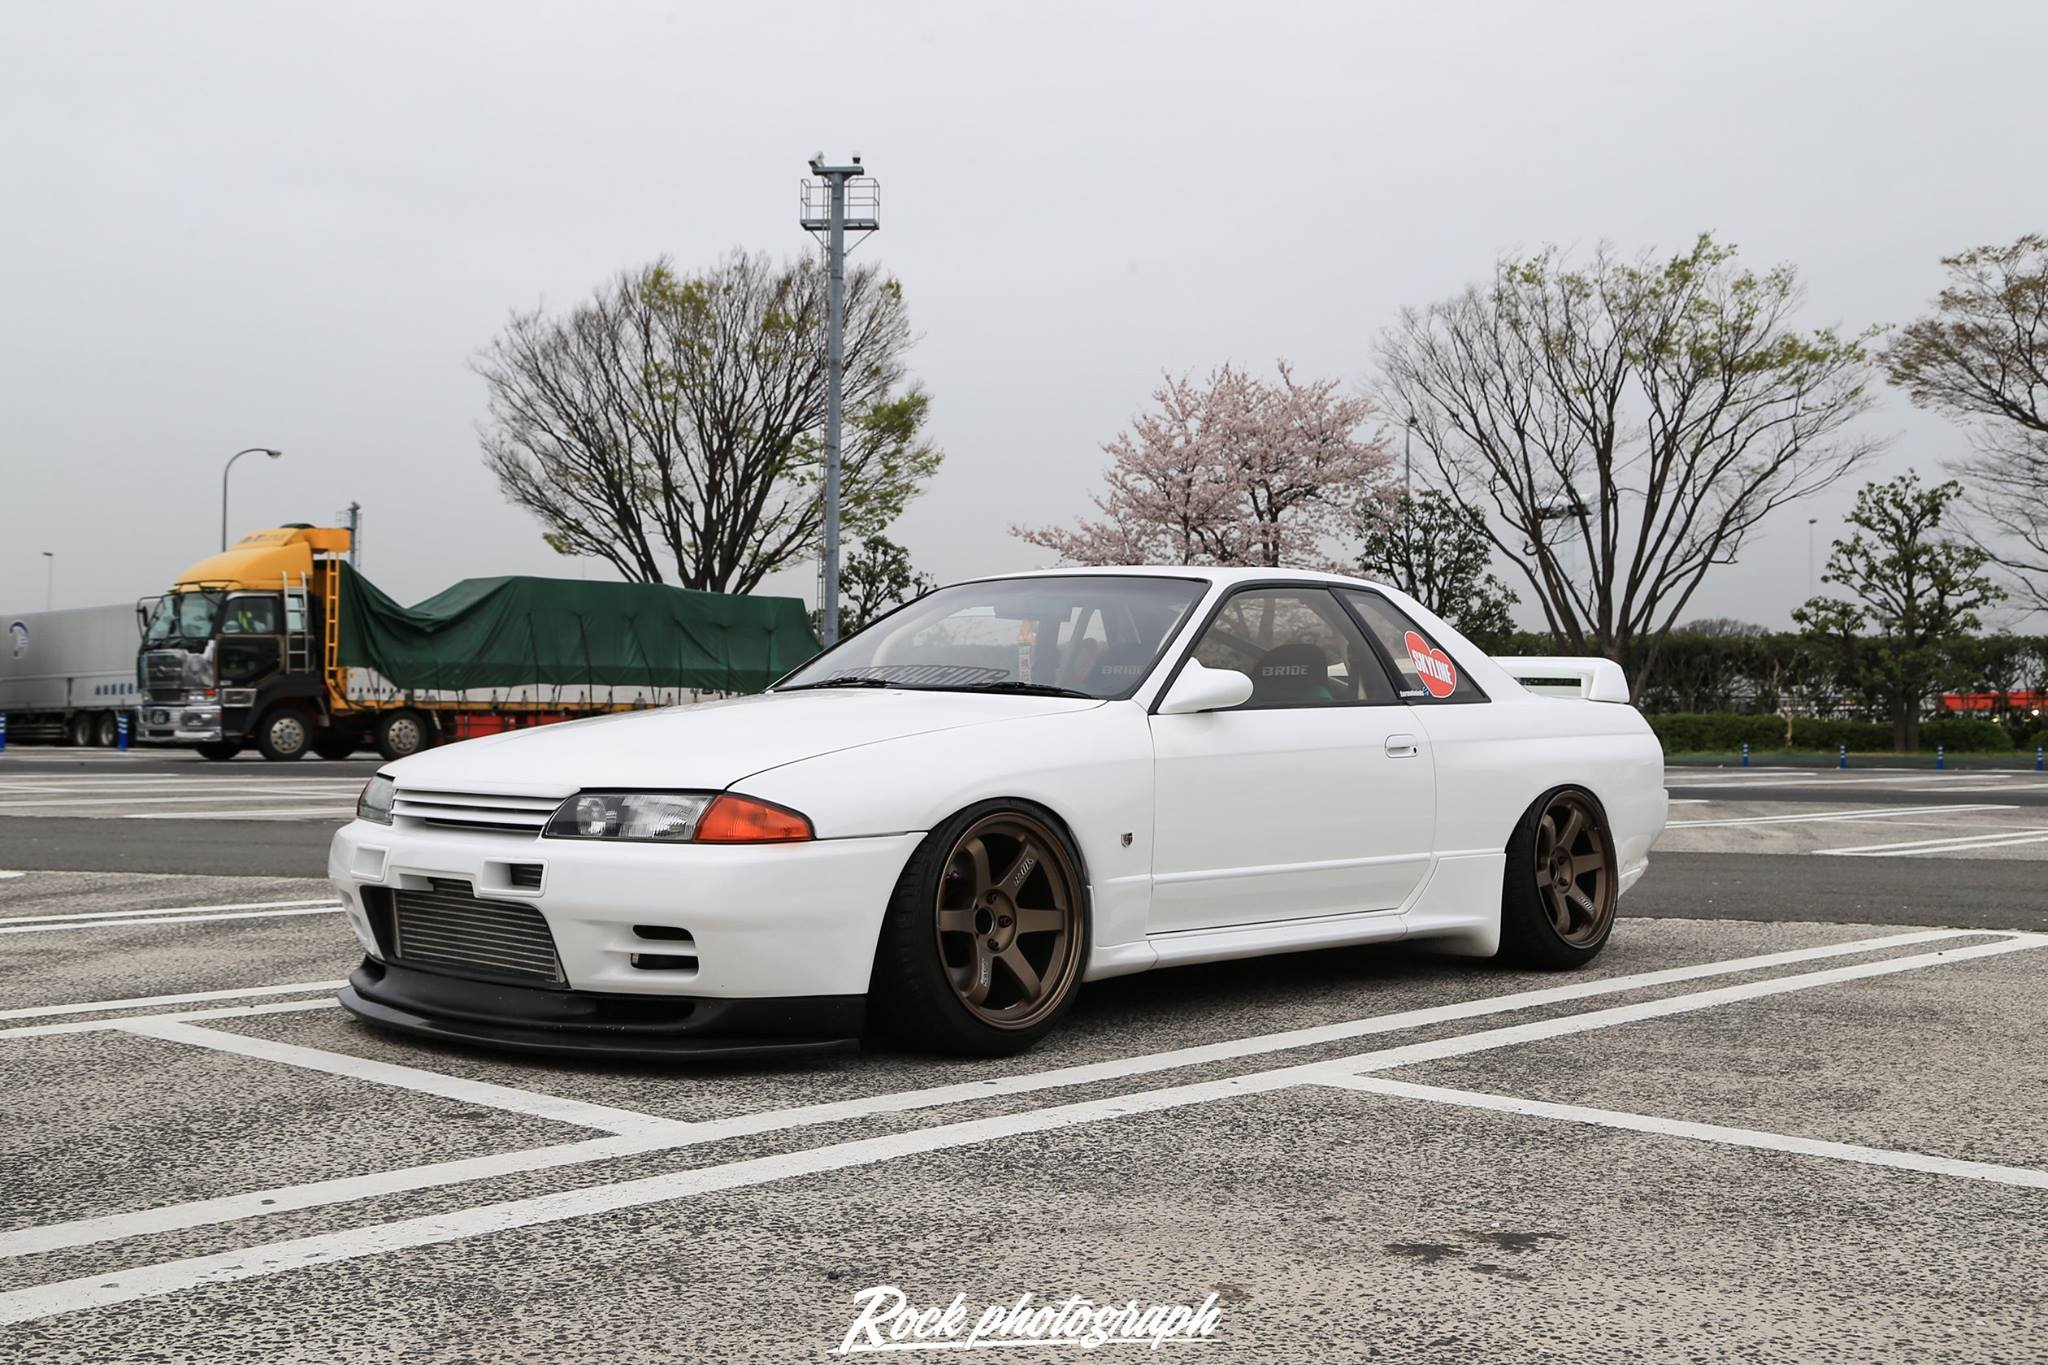 R32 GT-R on TE37 wheels - Farmofminds